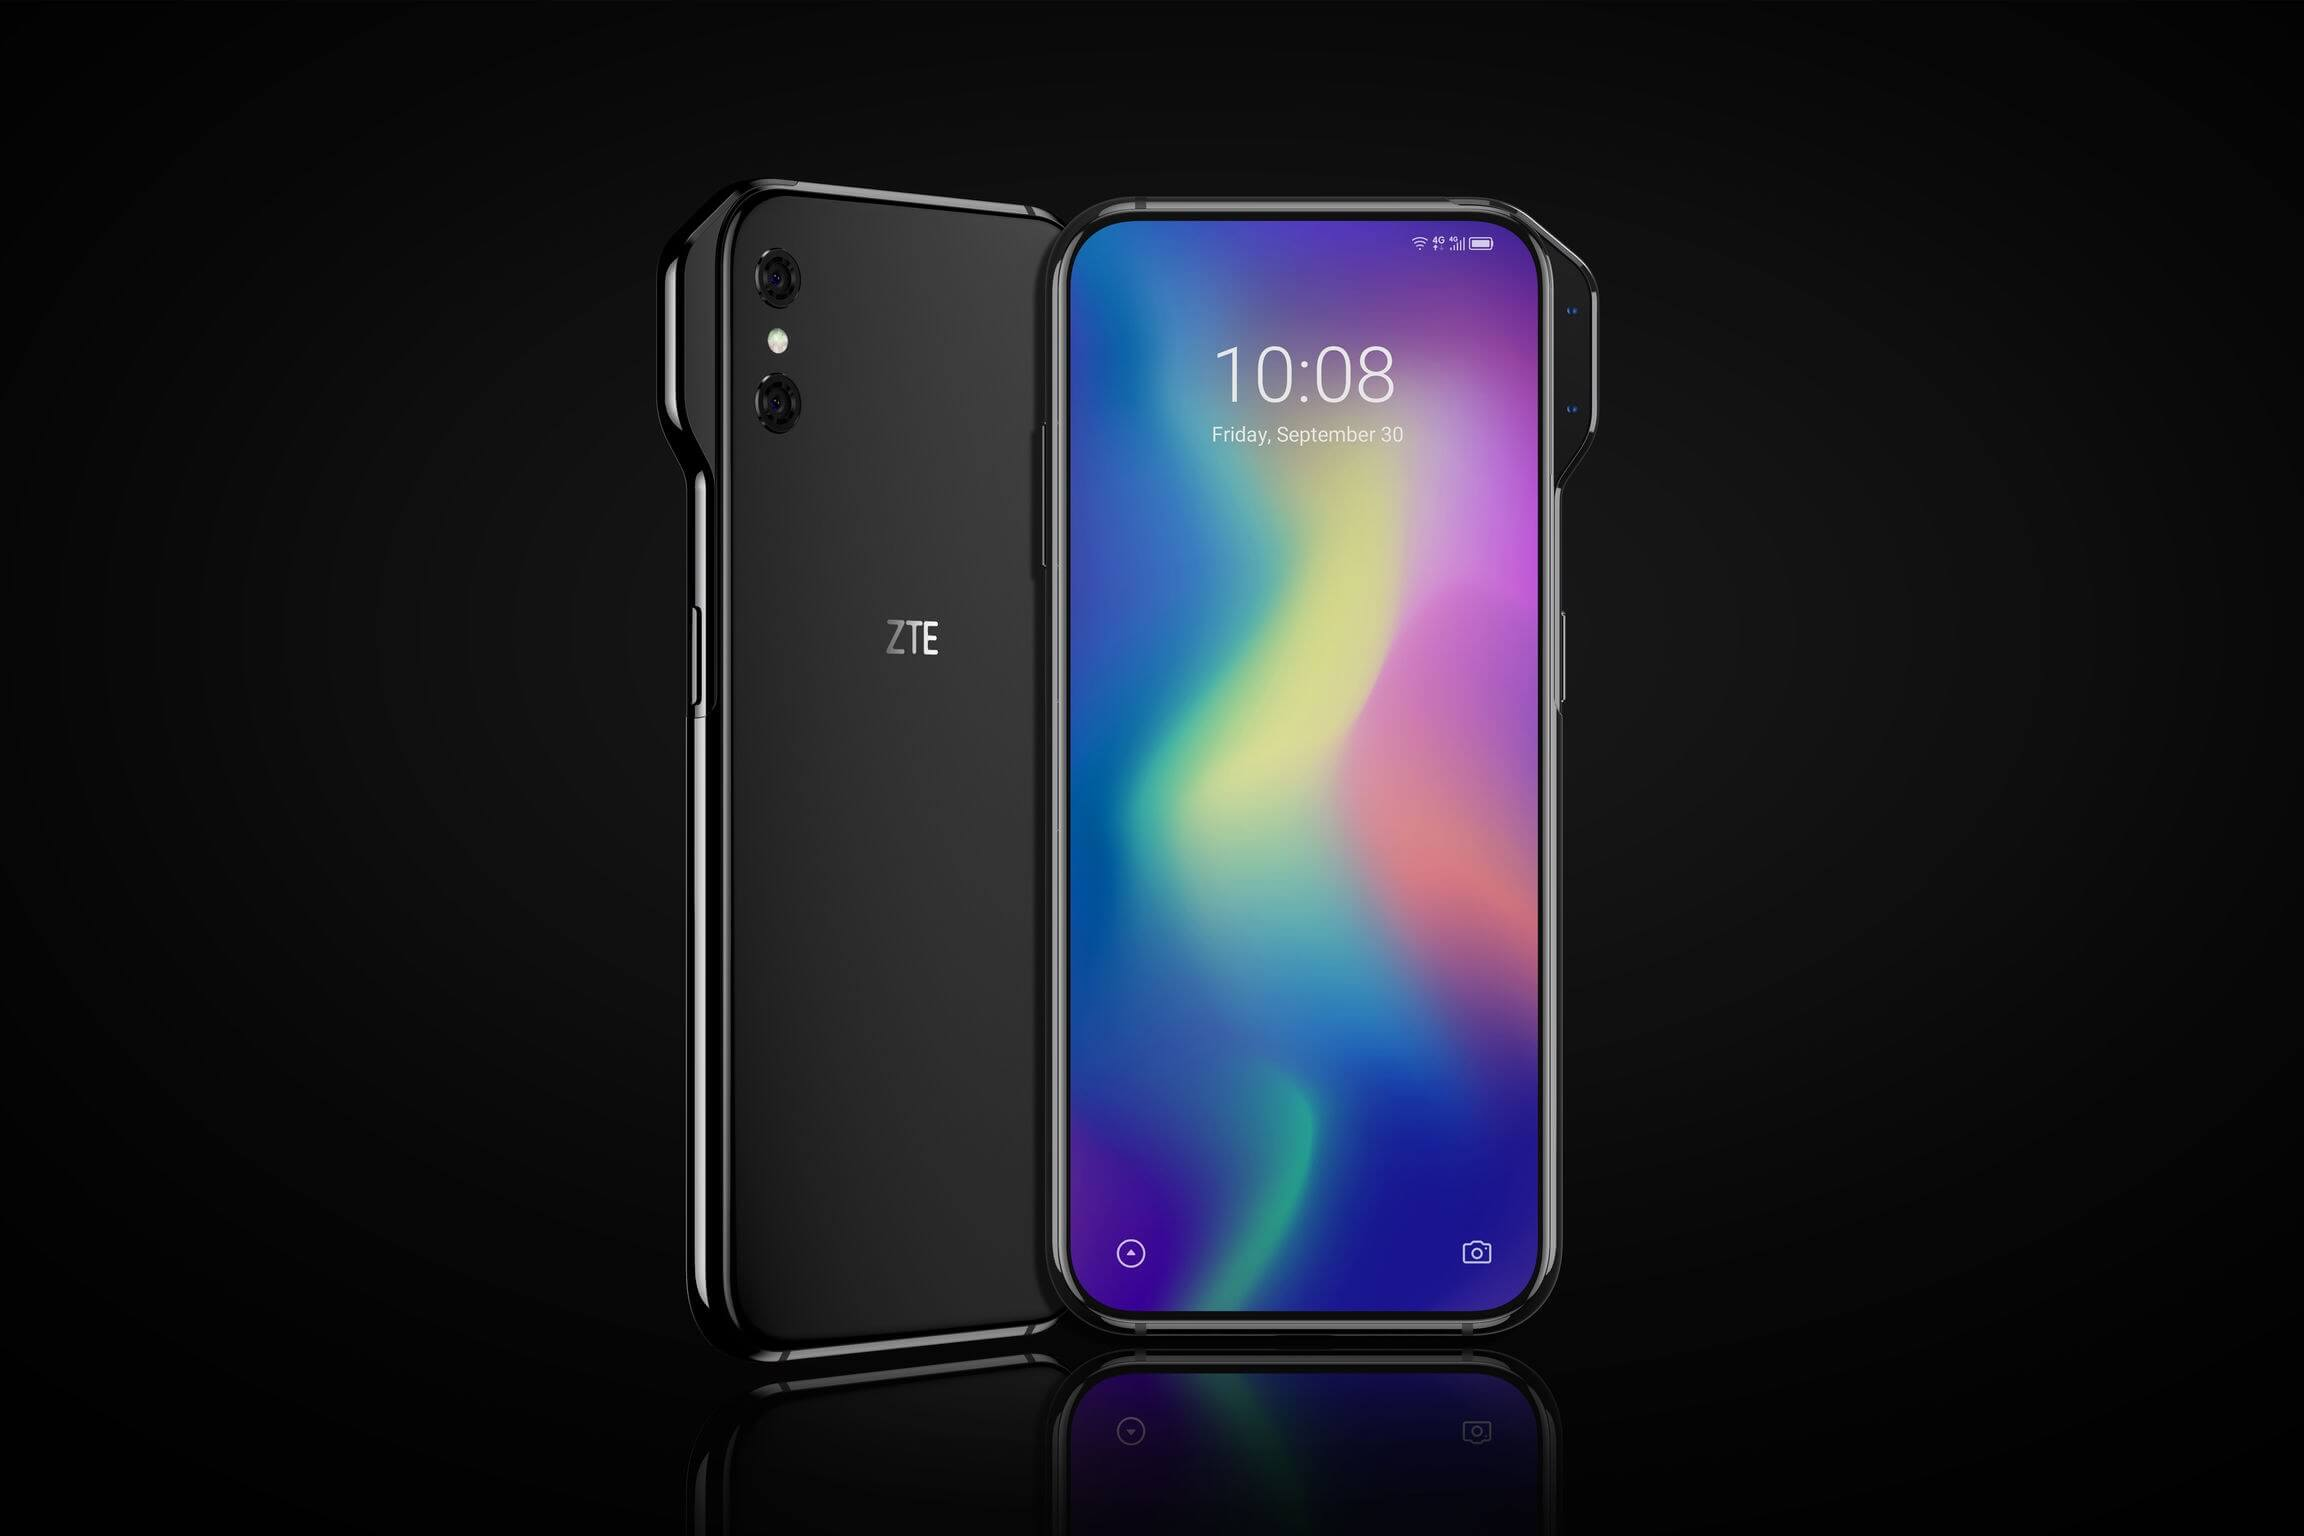 ZTE's slider and side-notch concept phones revealed - TechSpot